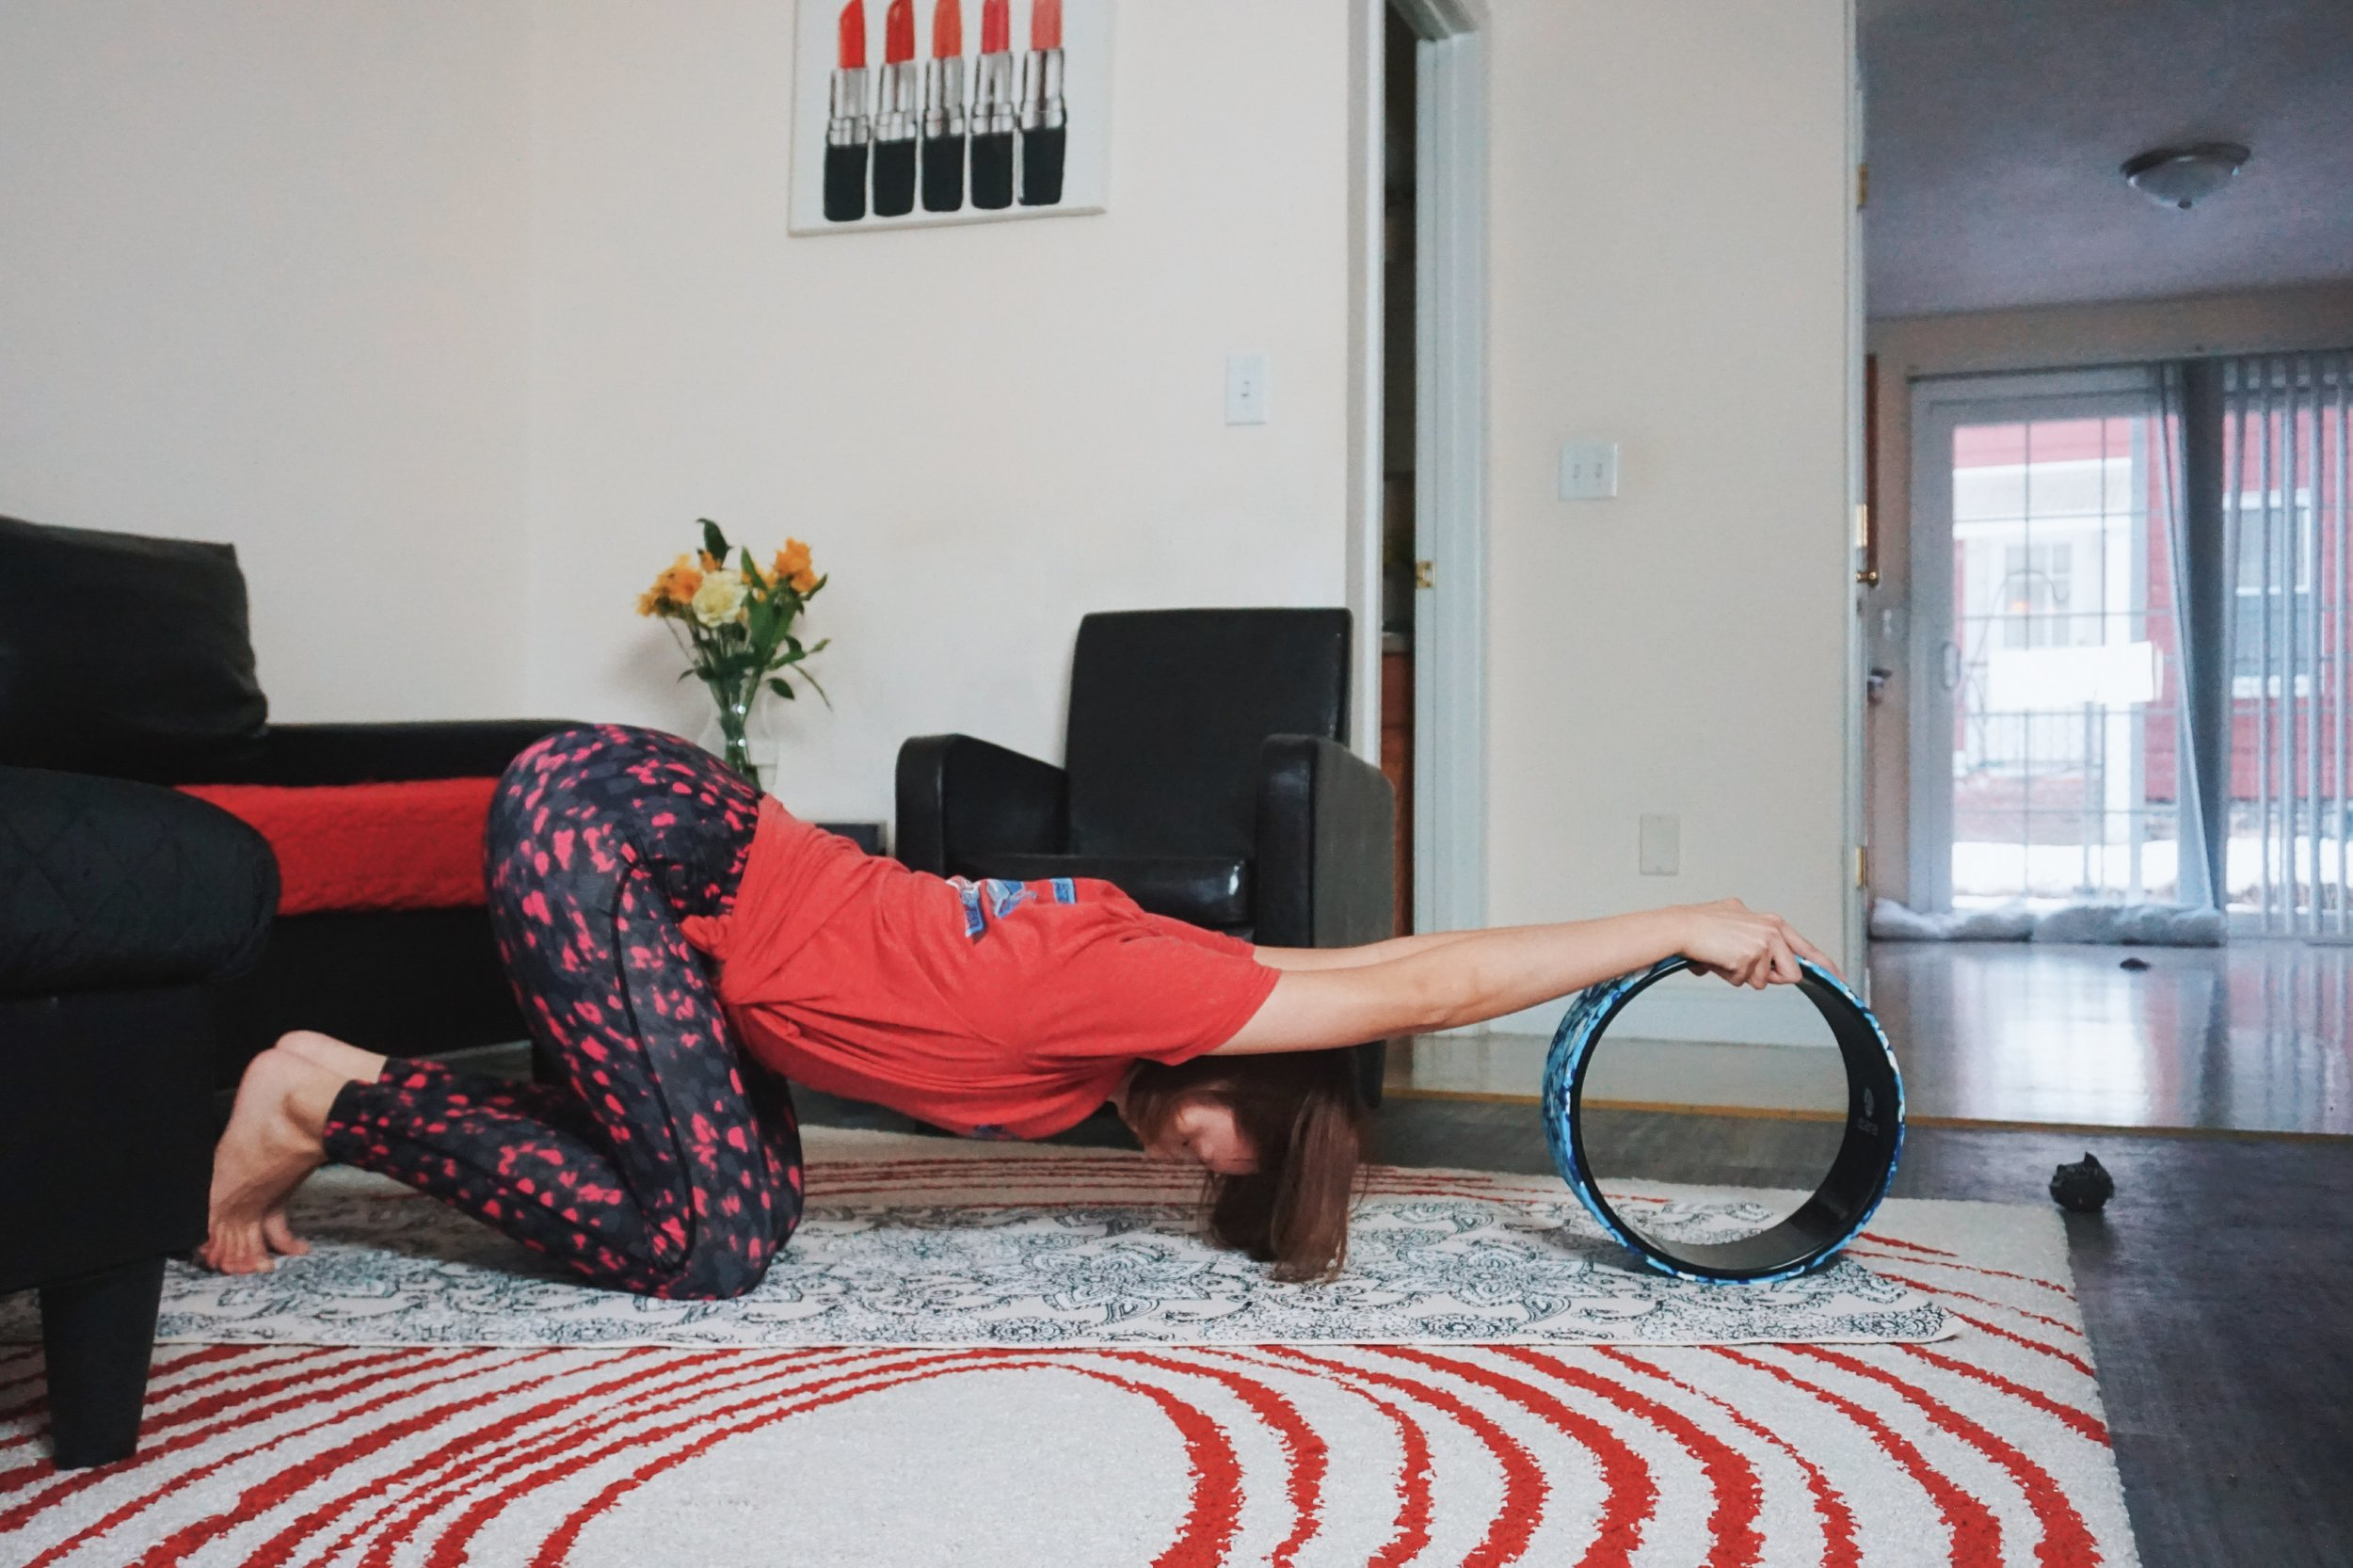 A beginner yogi stretching her chest and shoulders on a yoga wheel.